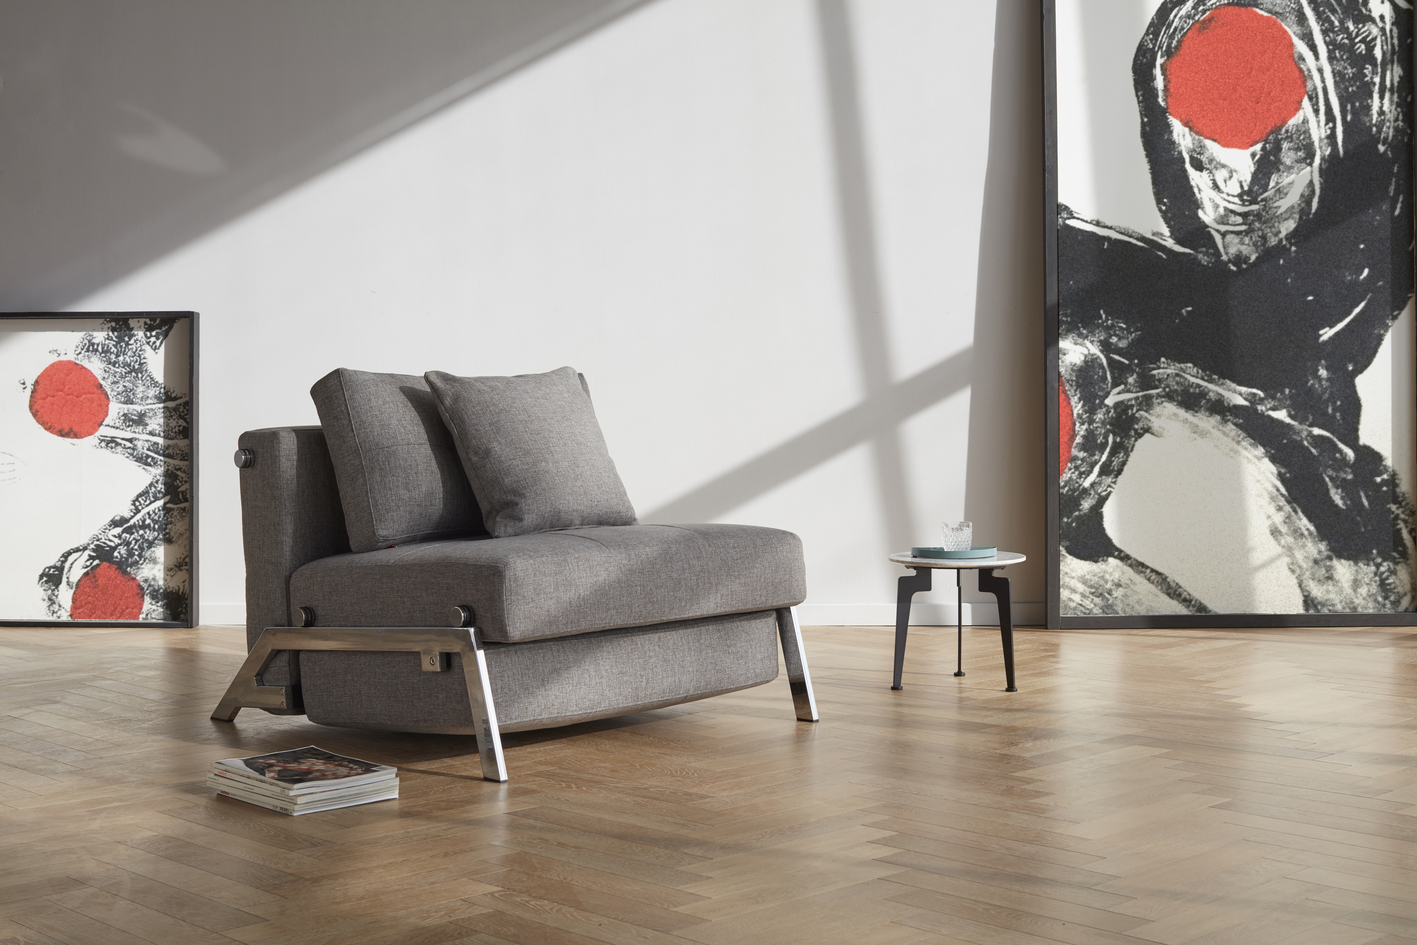 Zenkei Sleeper Chair in Sofa Mode